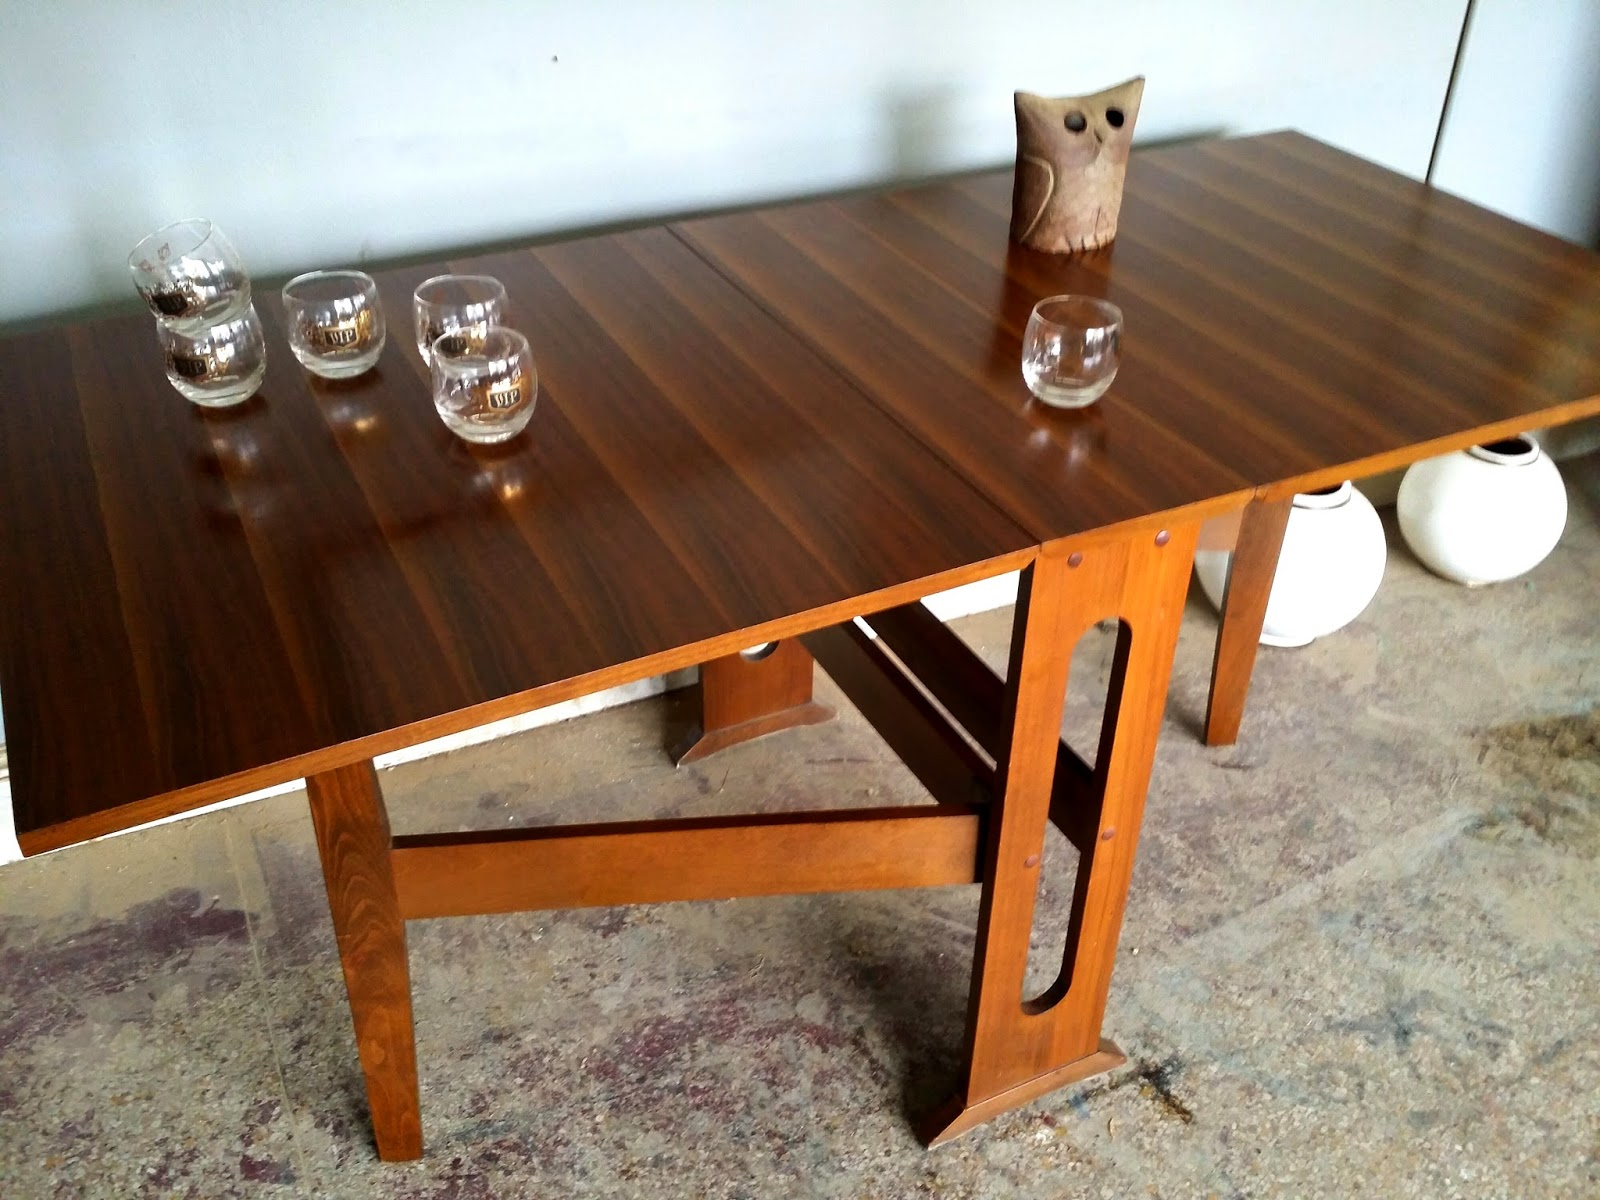 This Is A Stunning Mid Century Drop Leaf Dining Table. A Wonderful, Danish  Modern Style And In Fantastic Condition. The Wood Is Beautiful.